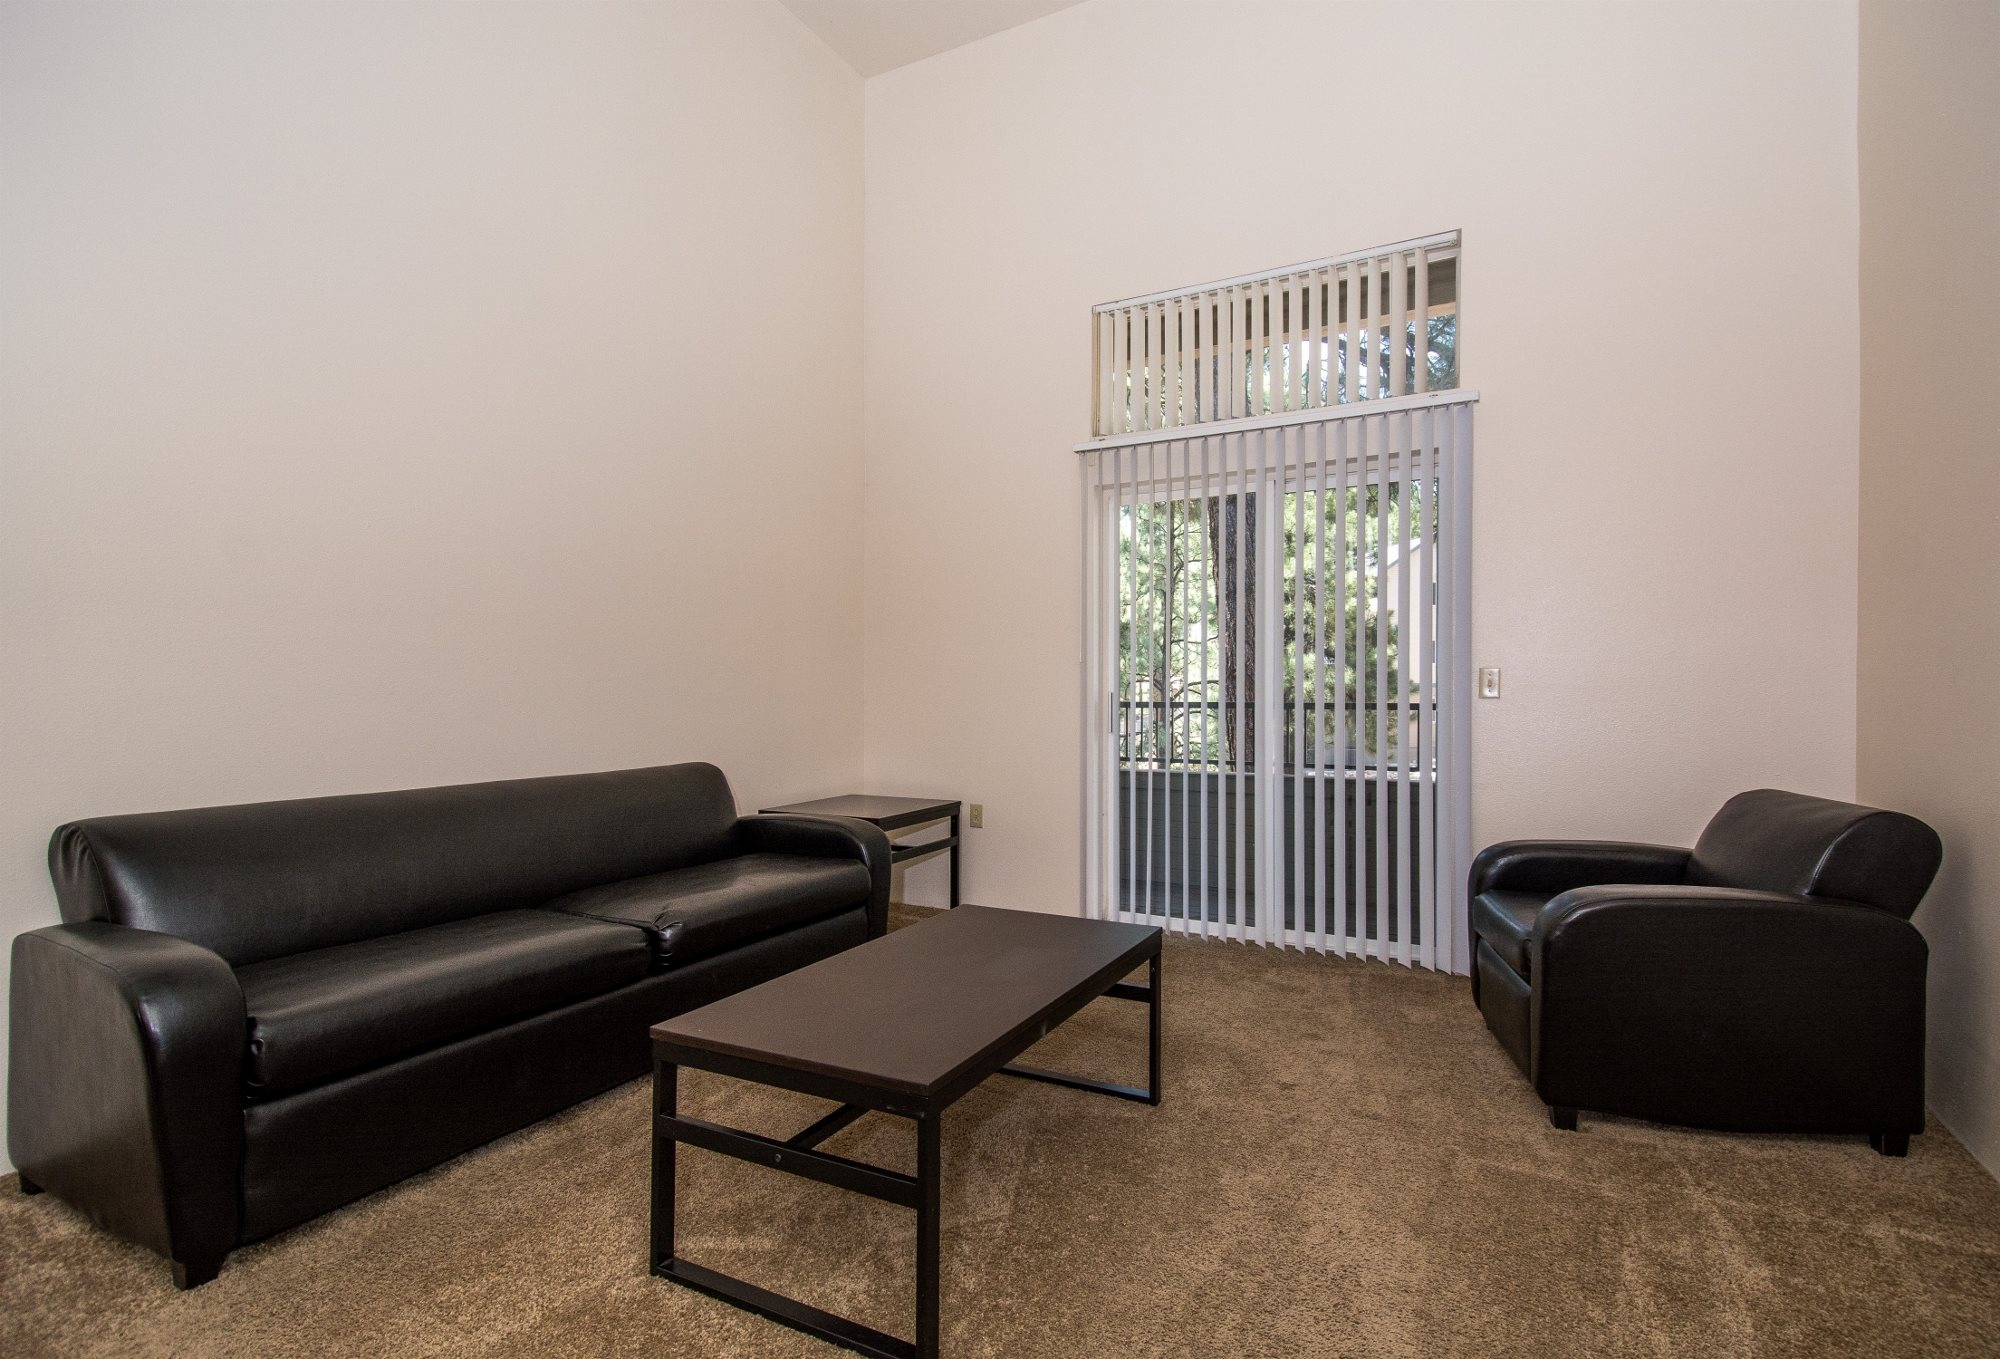 Furniture Included at Highland Village Apartments in Flagstaff, AZ